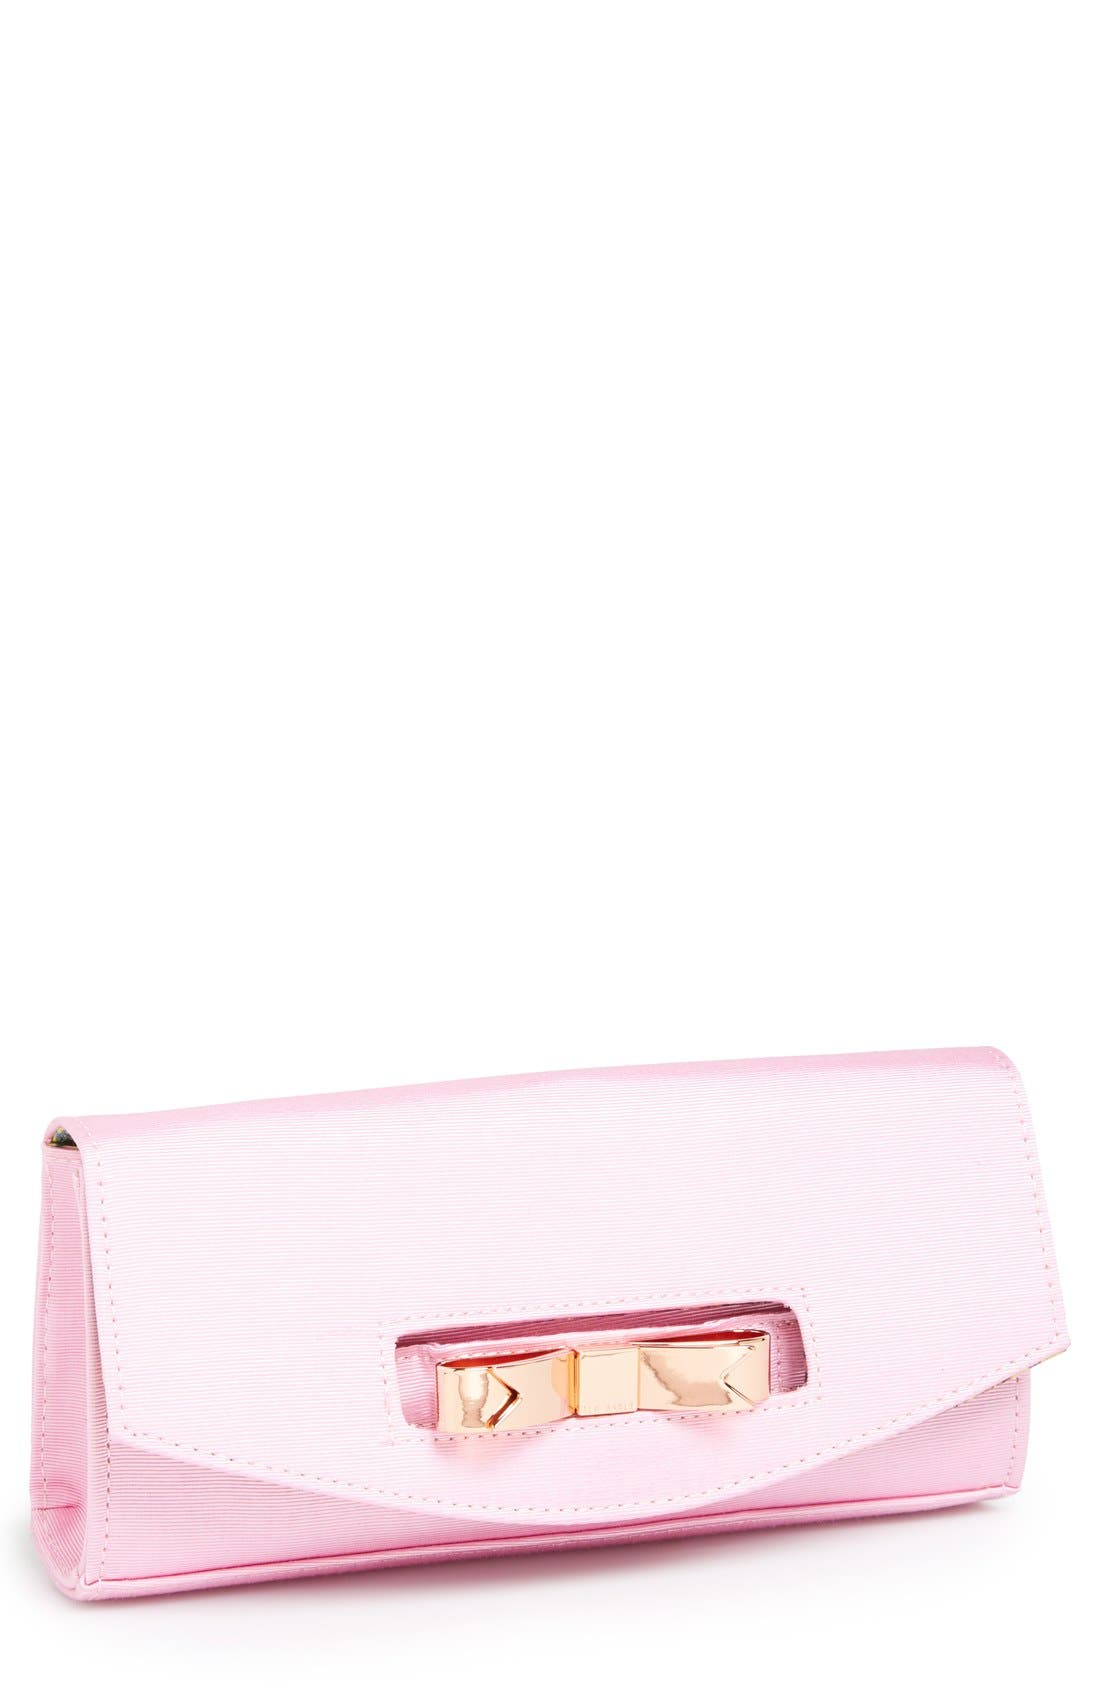 Main Image - Ted Baker London 'Bow' Flap Clutch